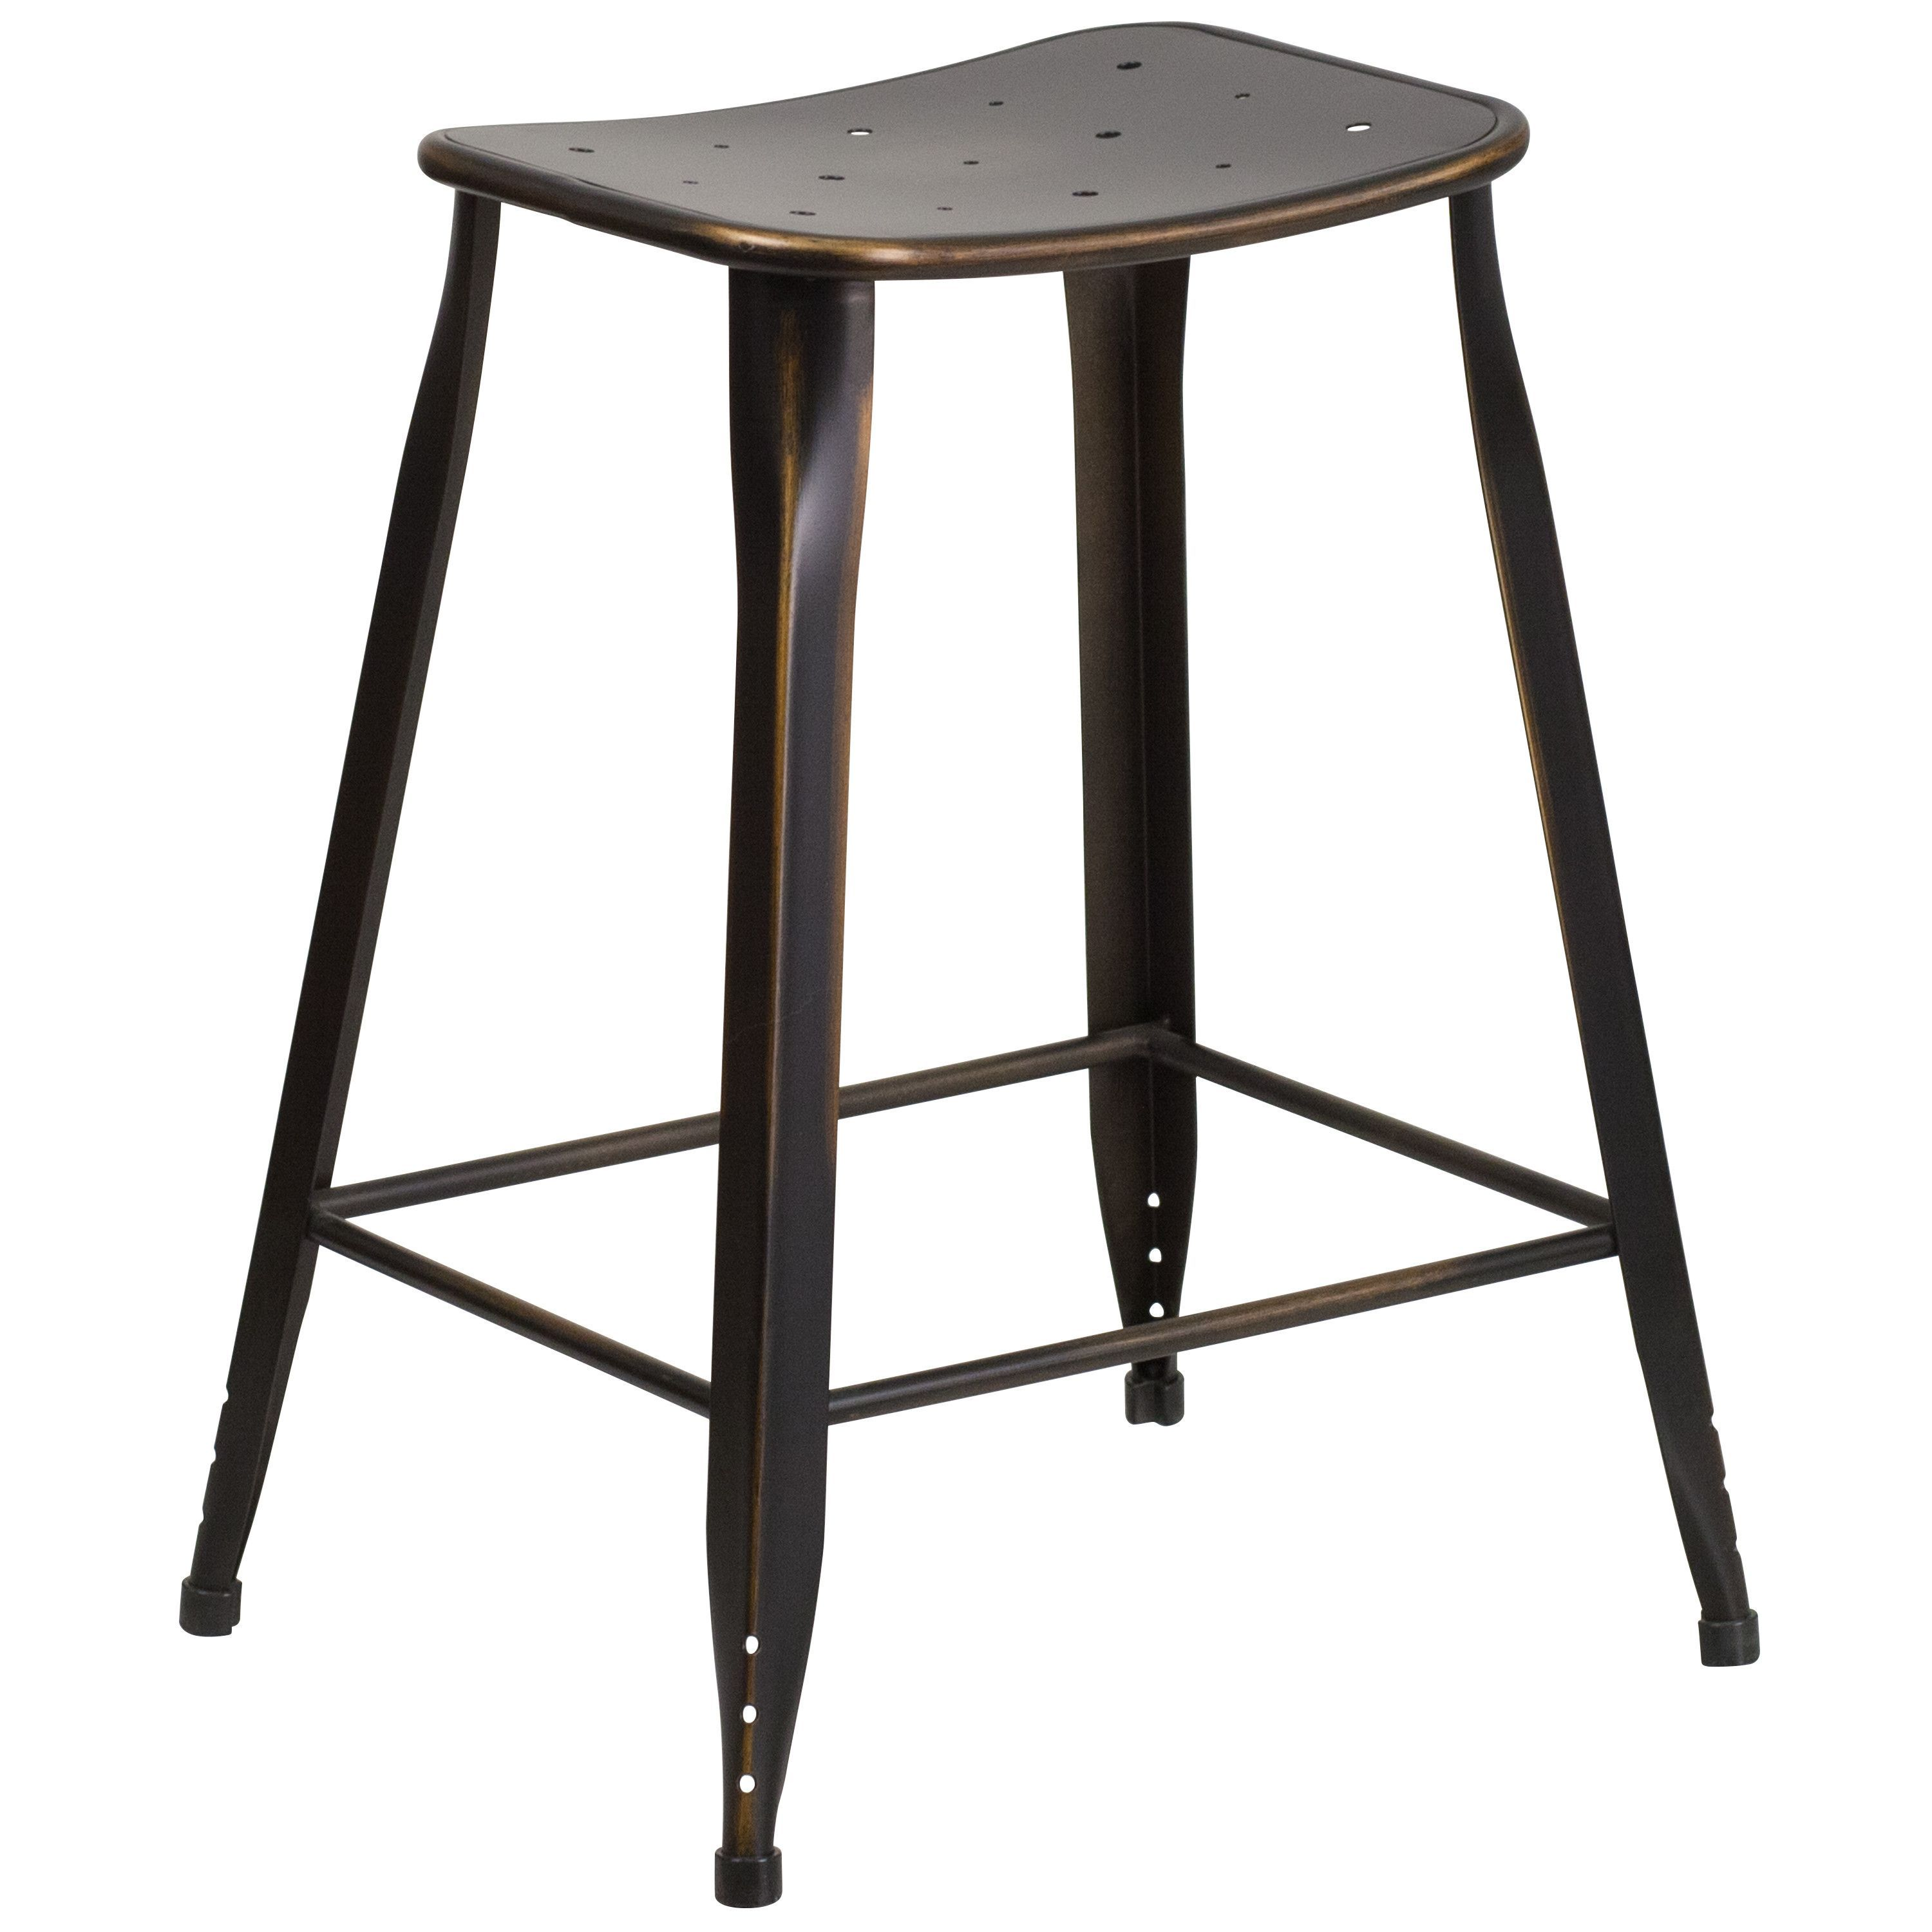 Astonishing Distressed Metal Counter Height Craft Stool Crafts Alphanode Cool Chair Designs And Ideas Alphanodeonline